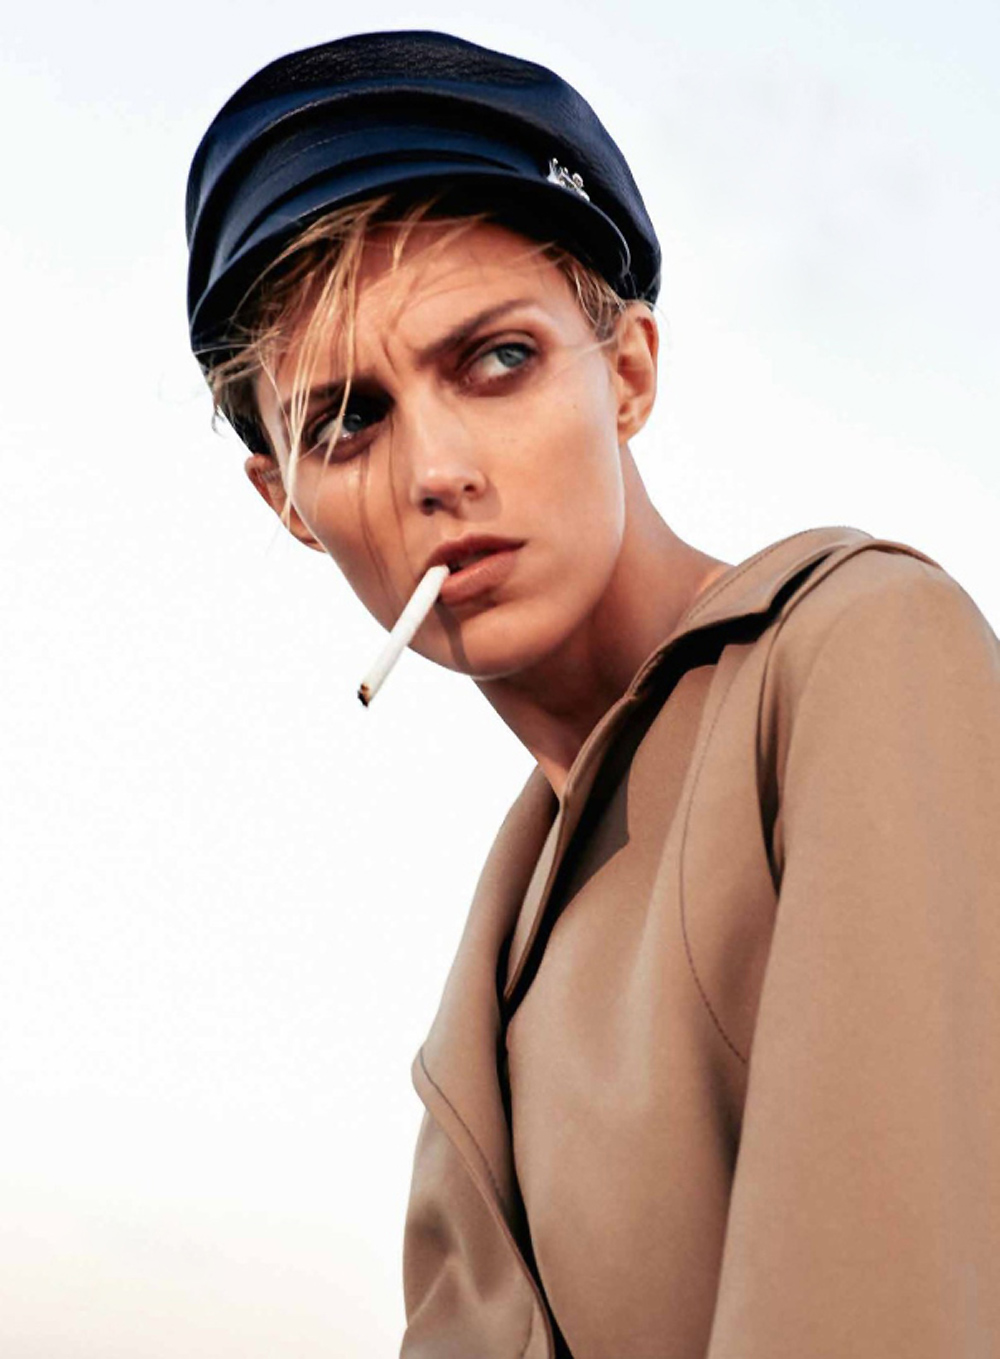 anja-rubik-collier-schorr-flair-magazine-13-october-Oracle-Fox-1